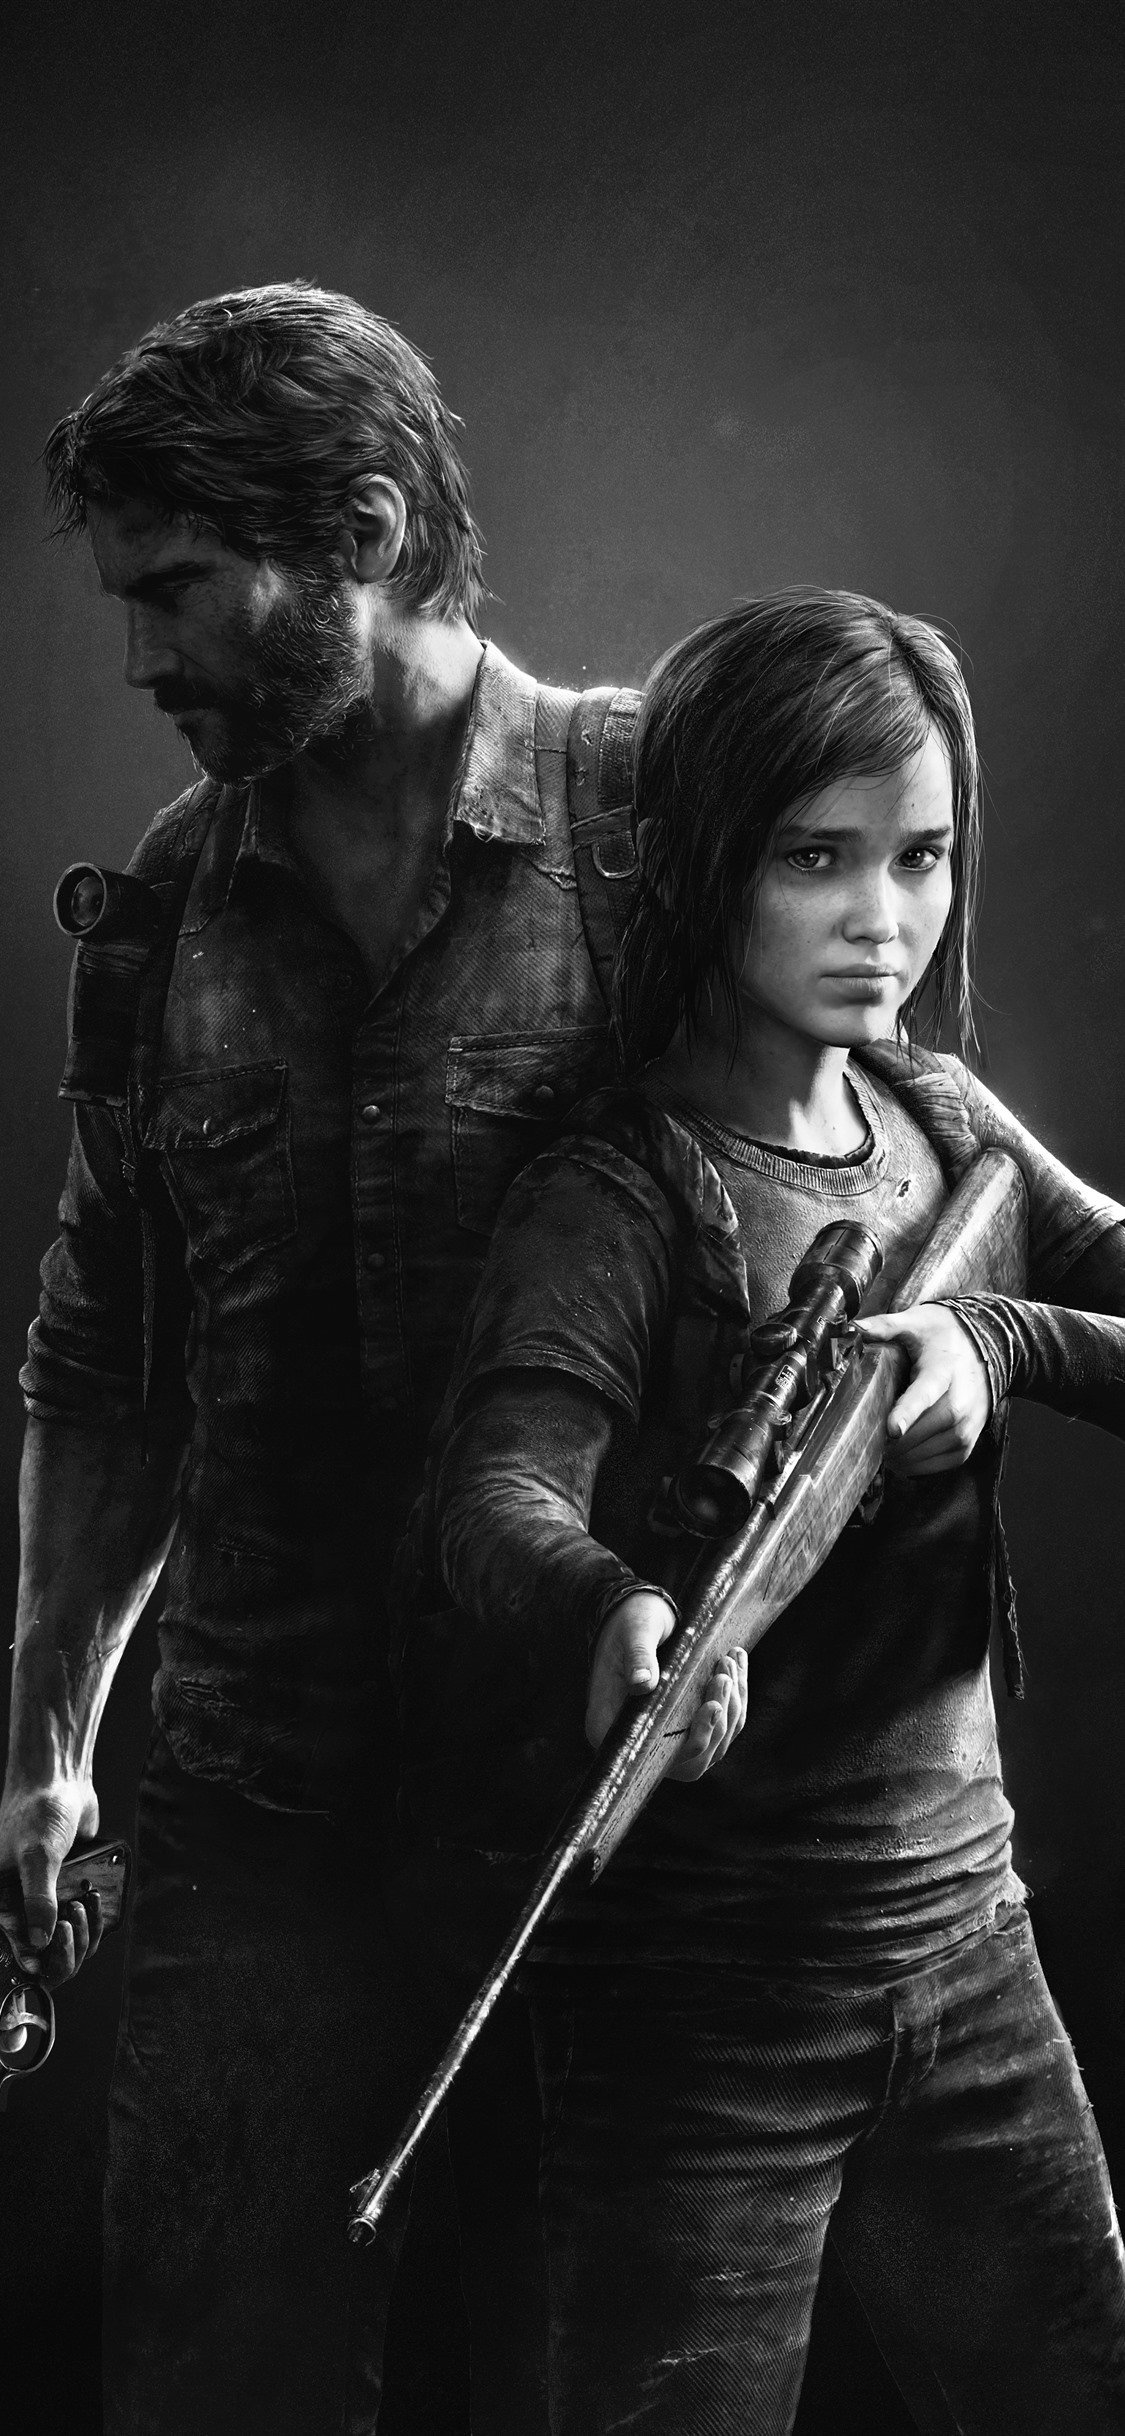 The Last of Us black and white picture 1242x2688 iPhone 11 ProXS 1125x2436